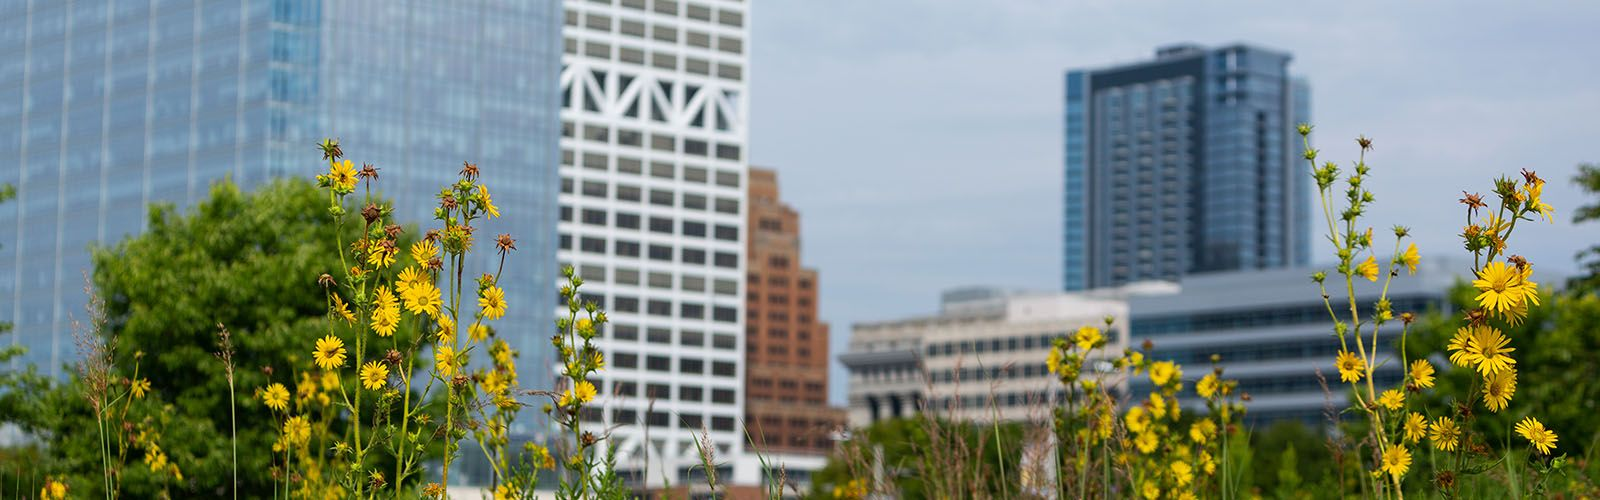 The tall stalks of a compass plant with yellow flowers in bloom in the foreground and a city with tall buildings in the background.